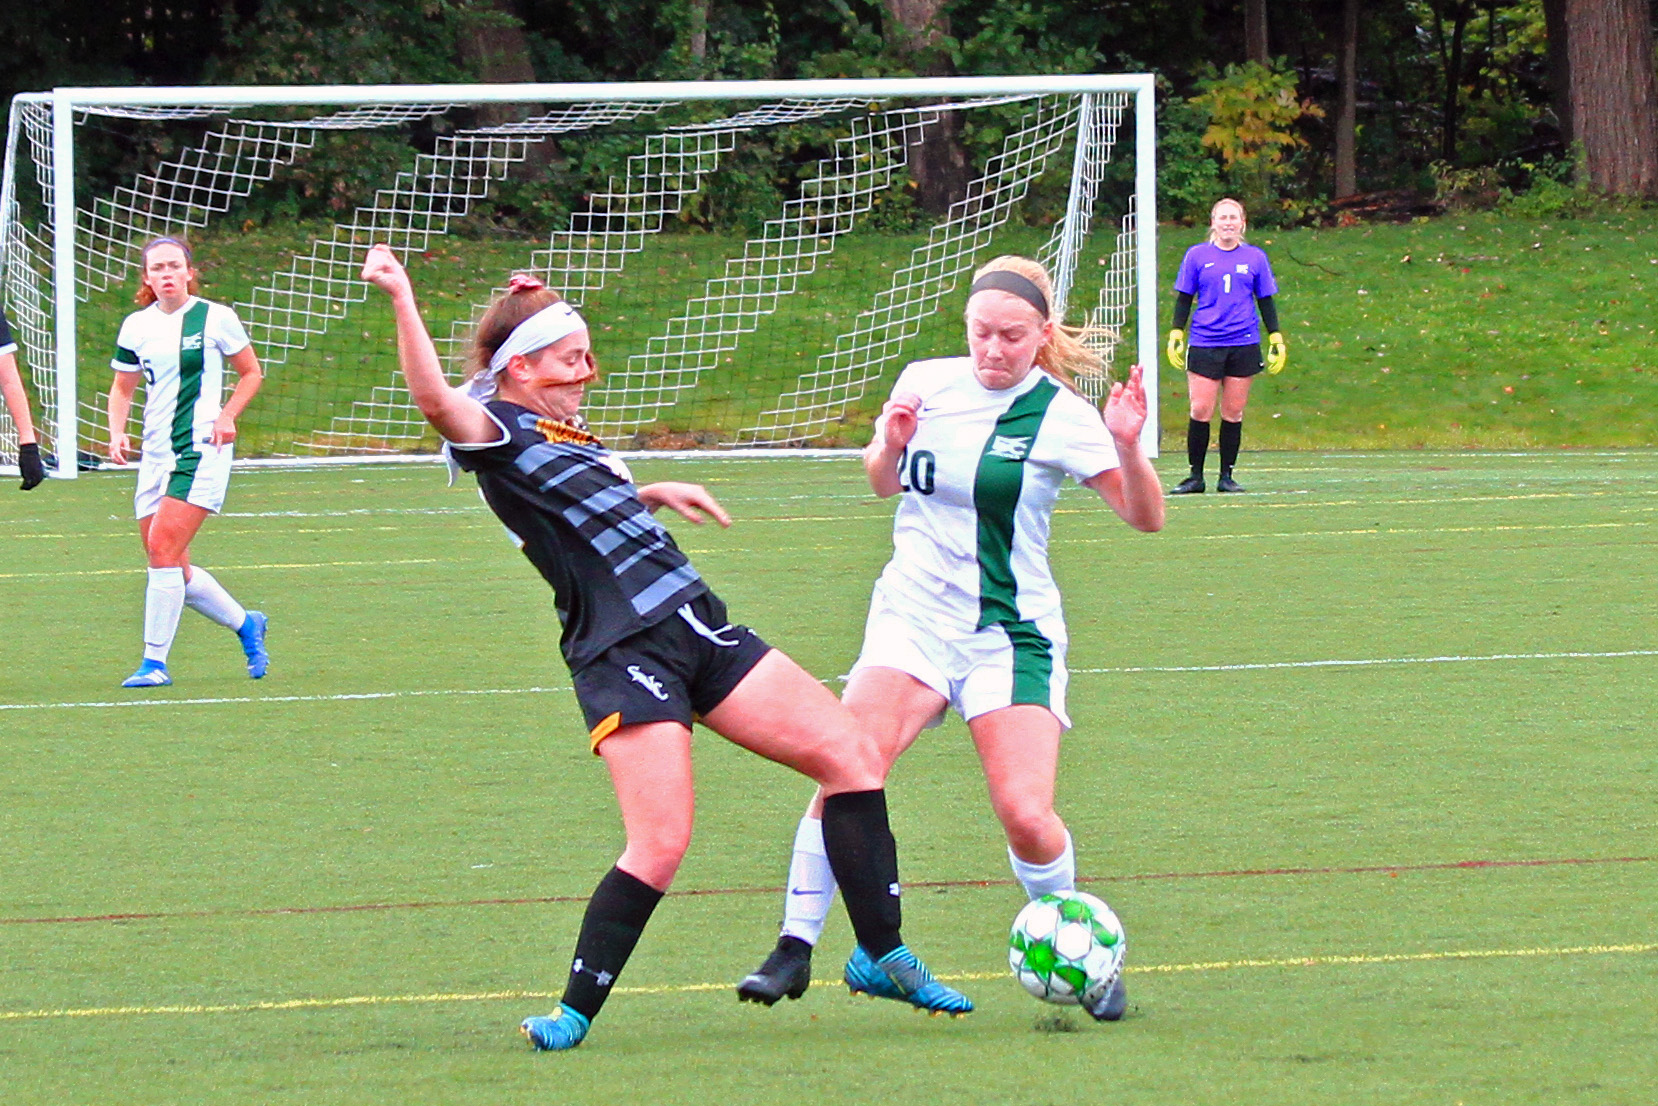 Women's Soccer Upset By Becker In NECC Quarterfinal